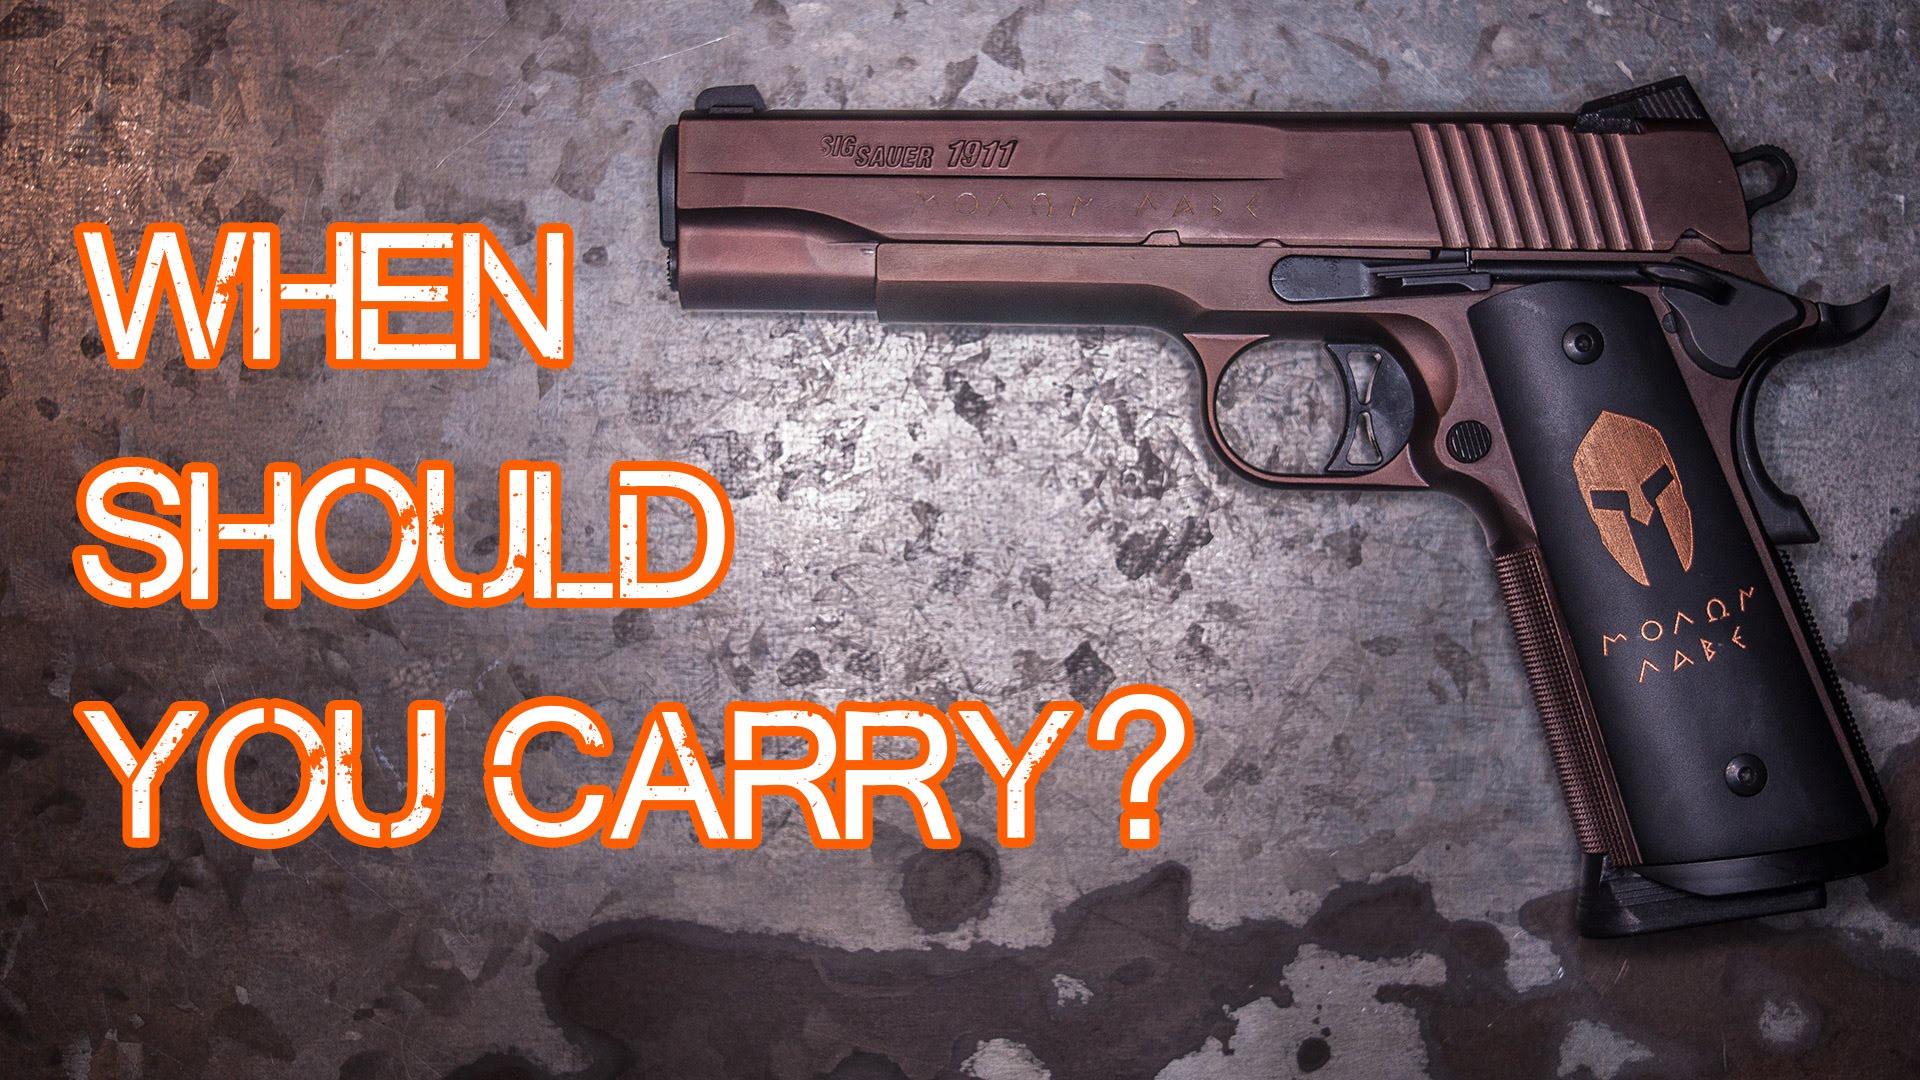 When Should You Carry a Gun? Safe Places? (Quickie)